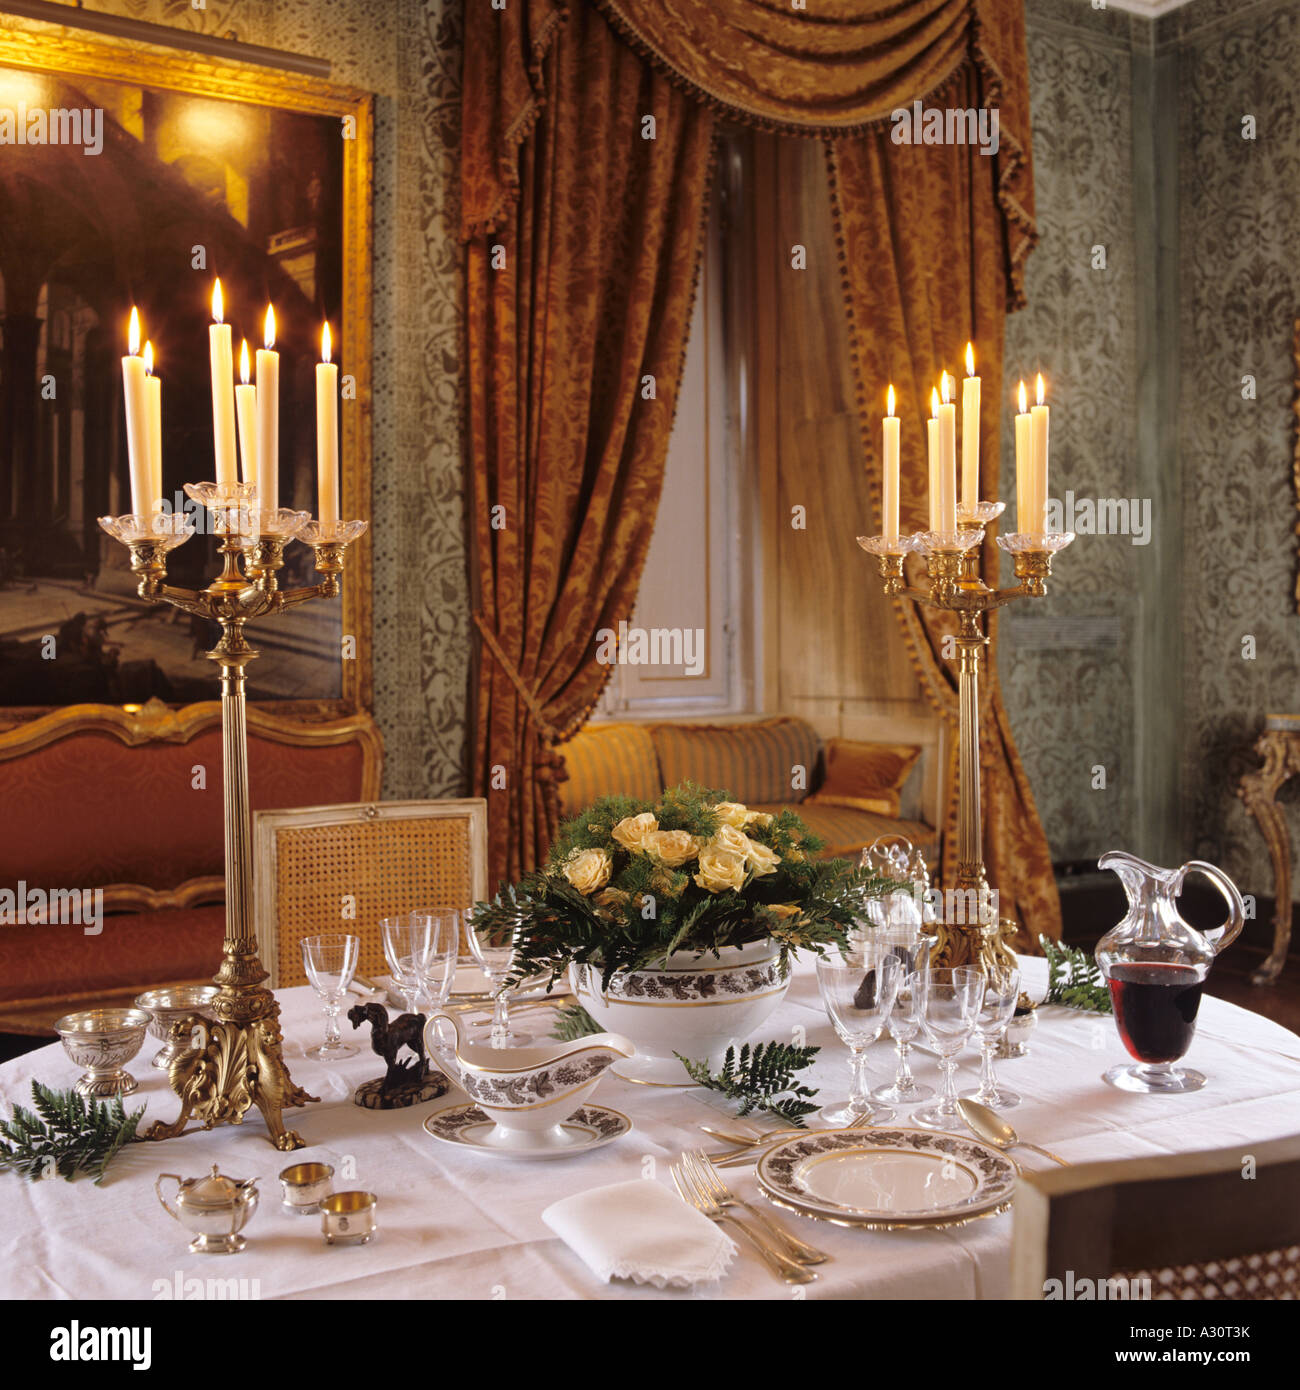 Set dinner table with candle light in a roman palazzo stock photo set dinner table with candle light in a roman palazzo aloadofball Images